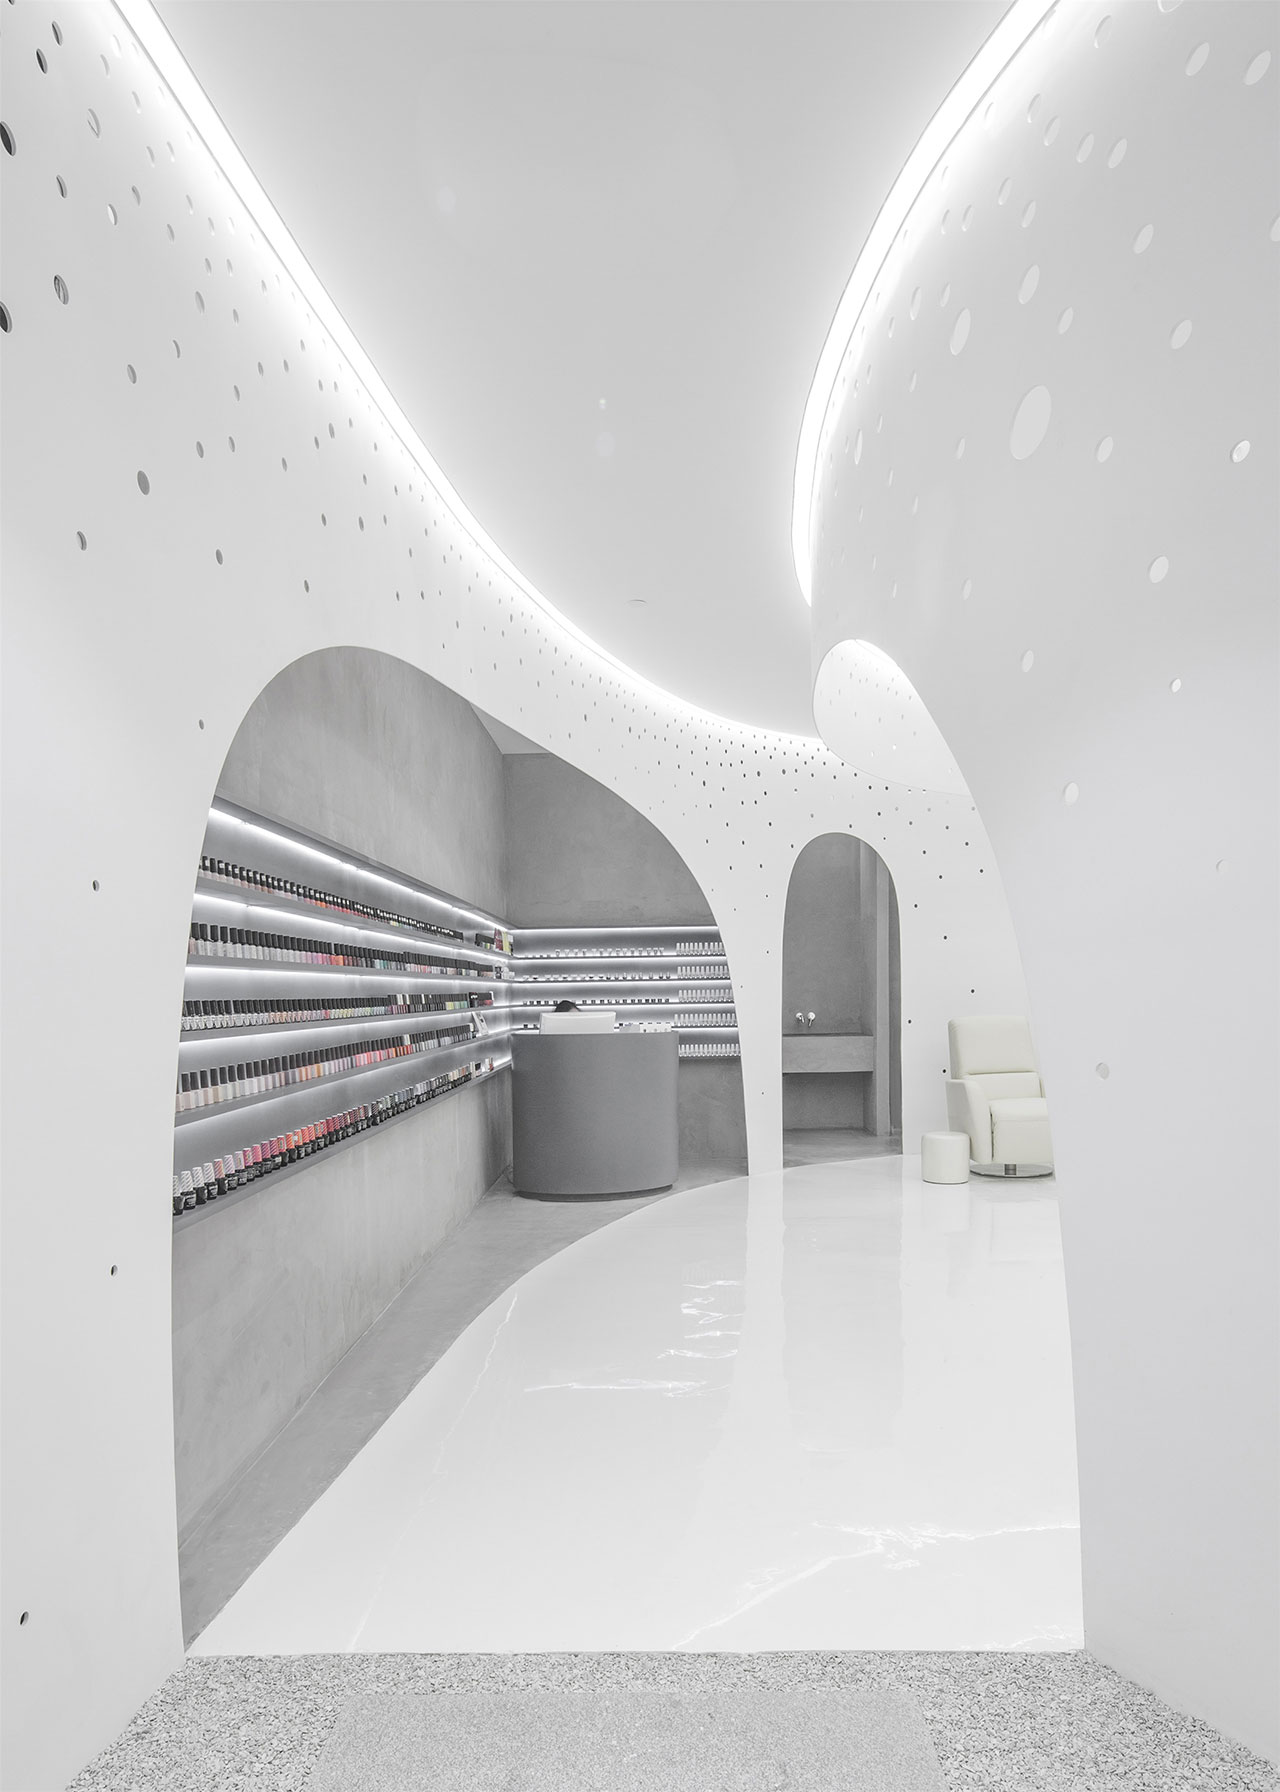 Pendant lighting for nails salon : A spiral ceiling for the new lily nails salon in beijing